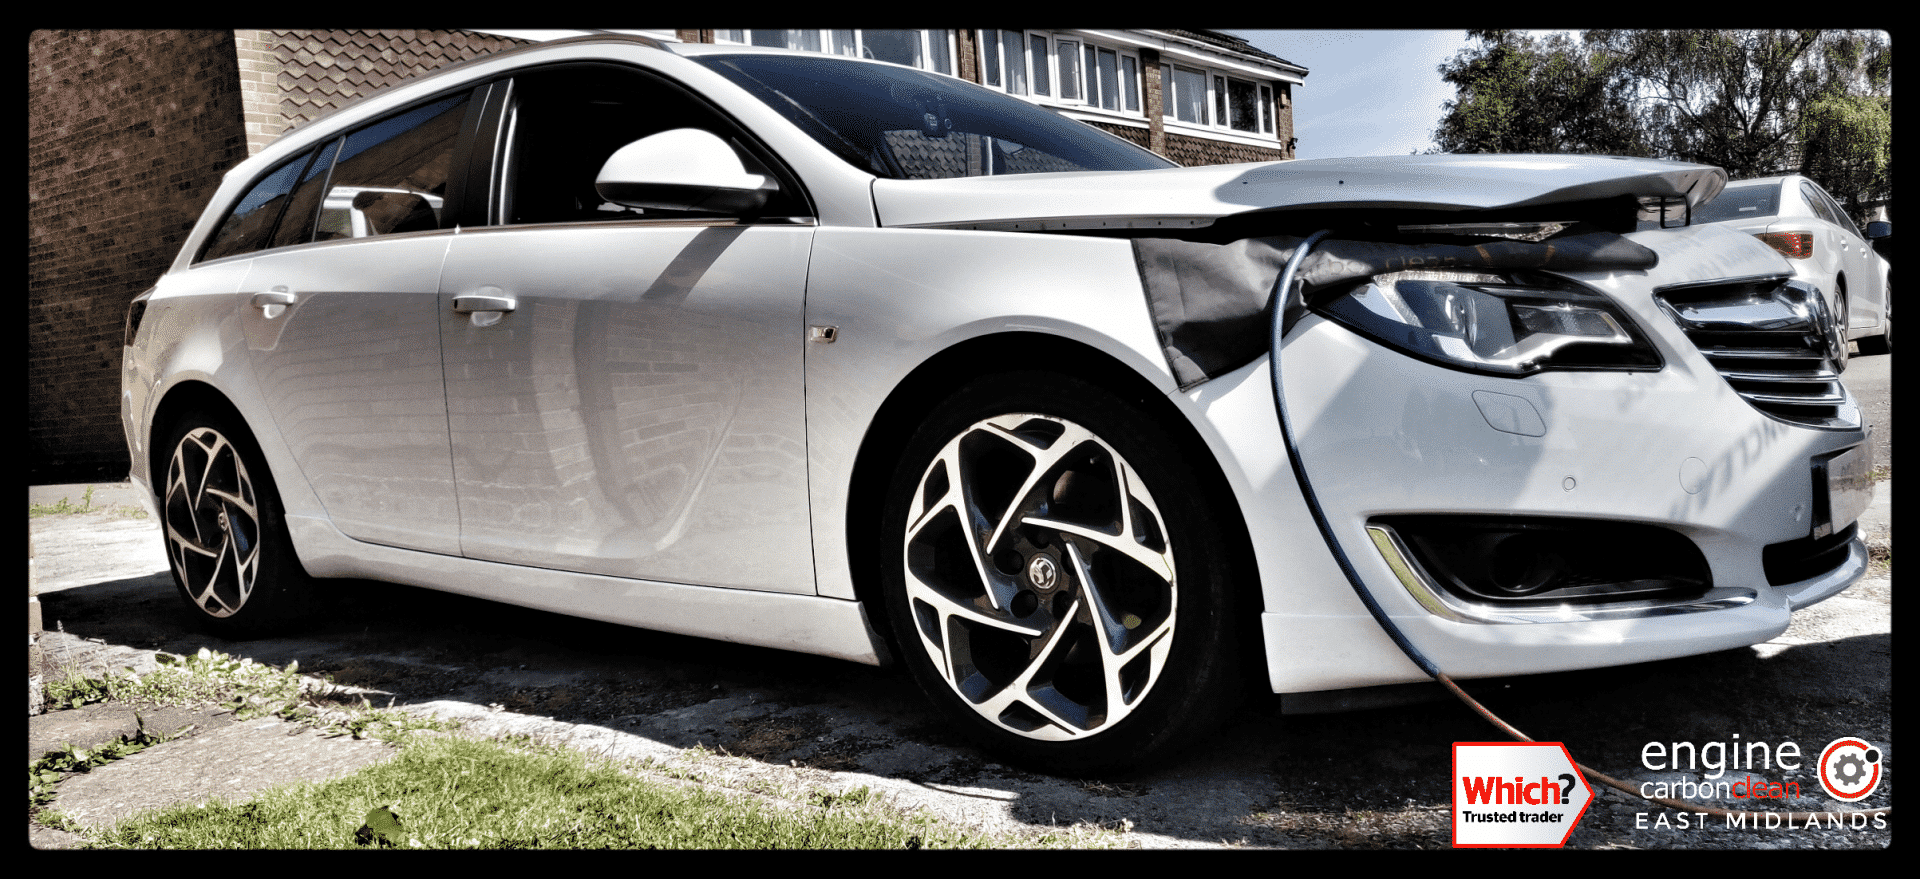 Diagnostic Consultation and Engine Carbon Clean on a Vauxhall Astra GTC 2.0 (2015 - 84,341 miles)